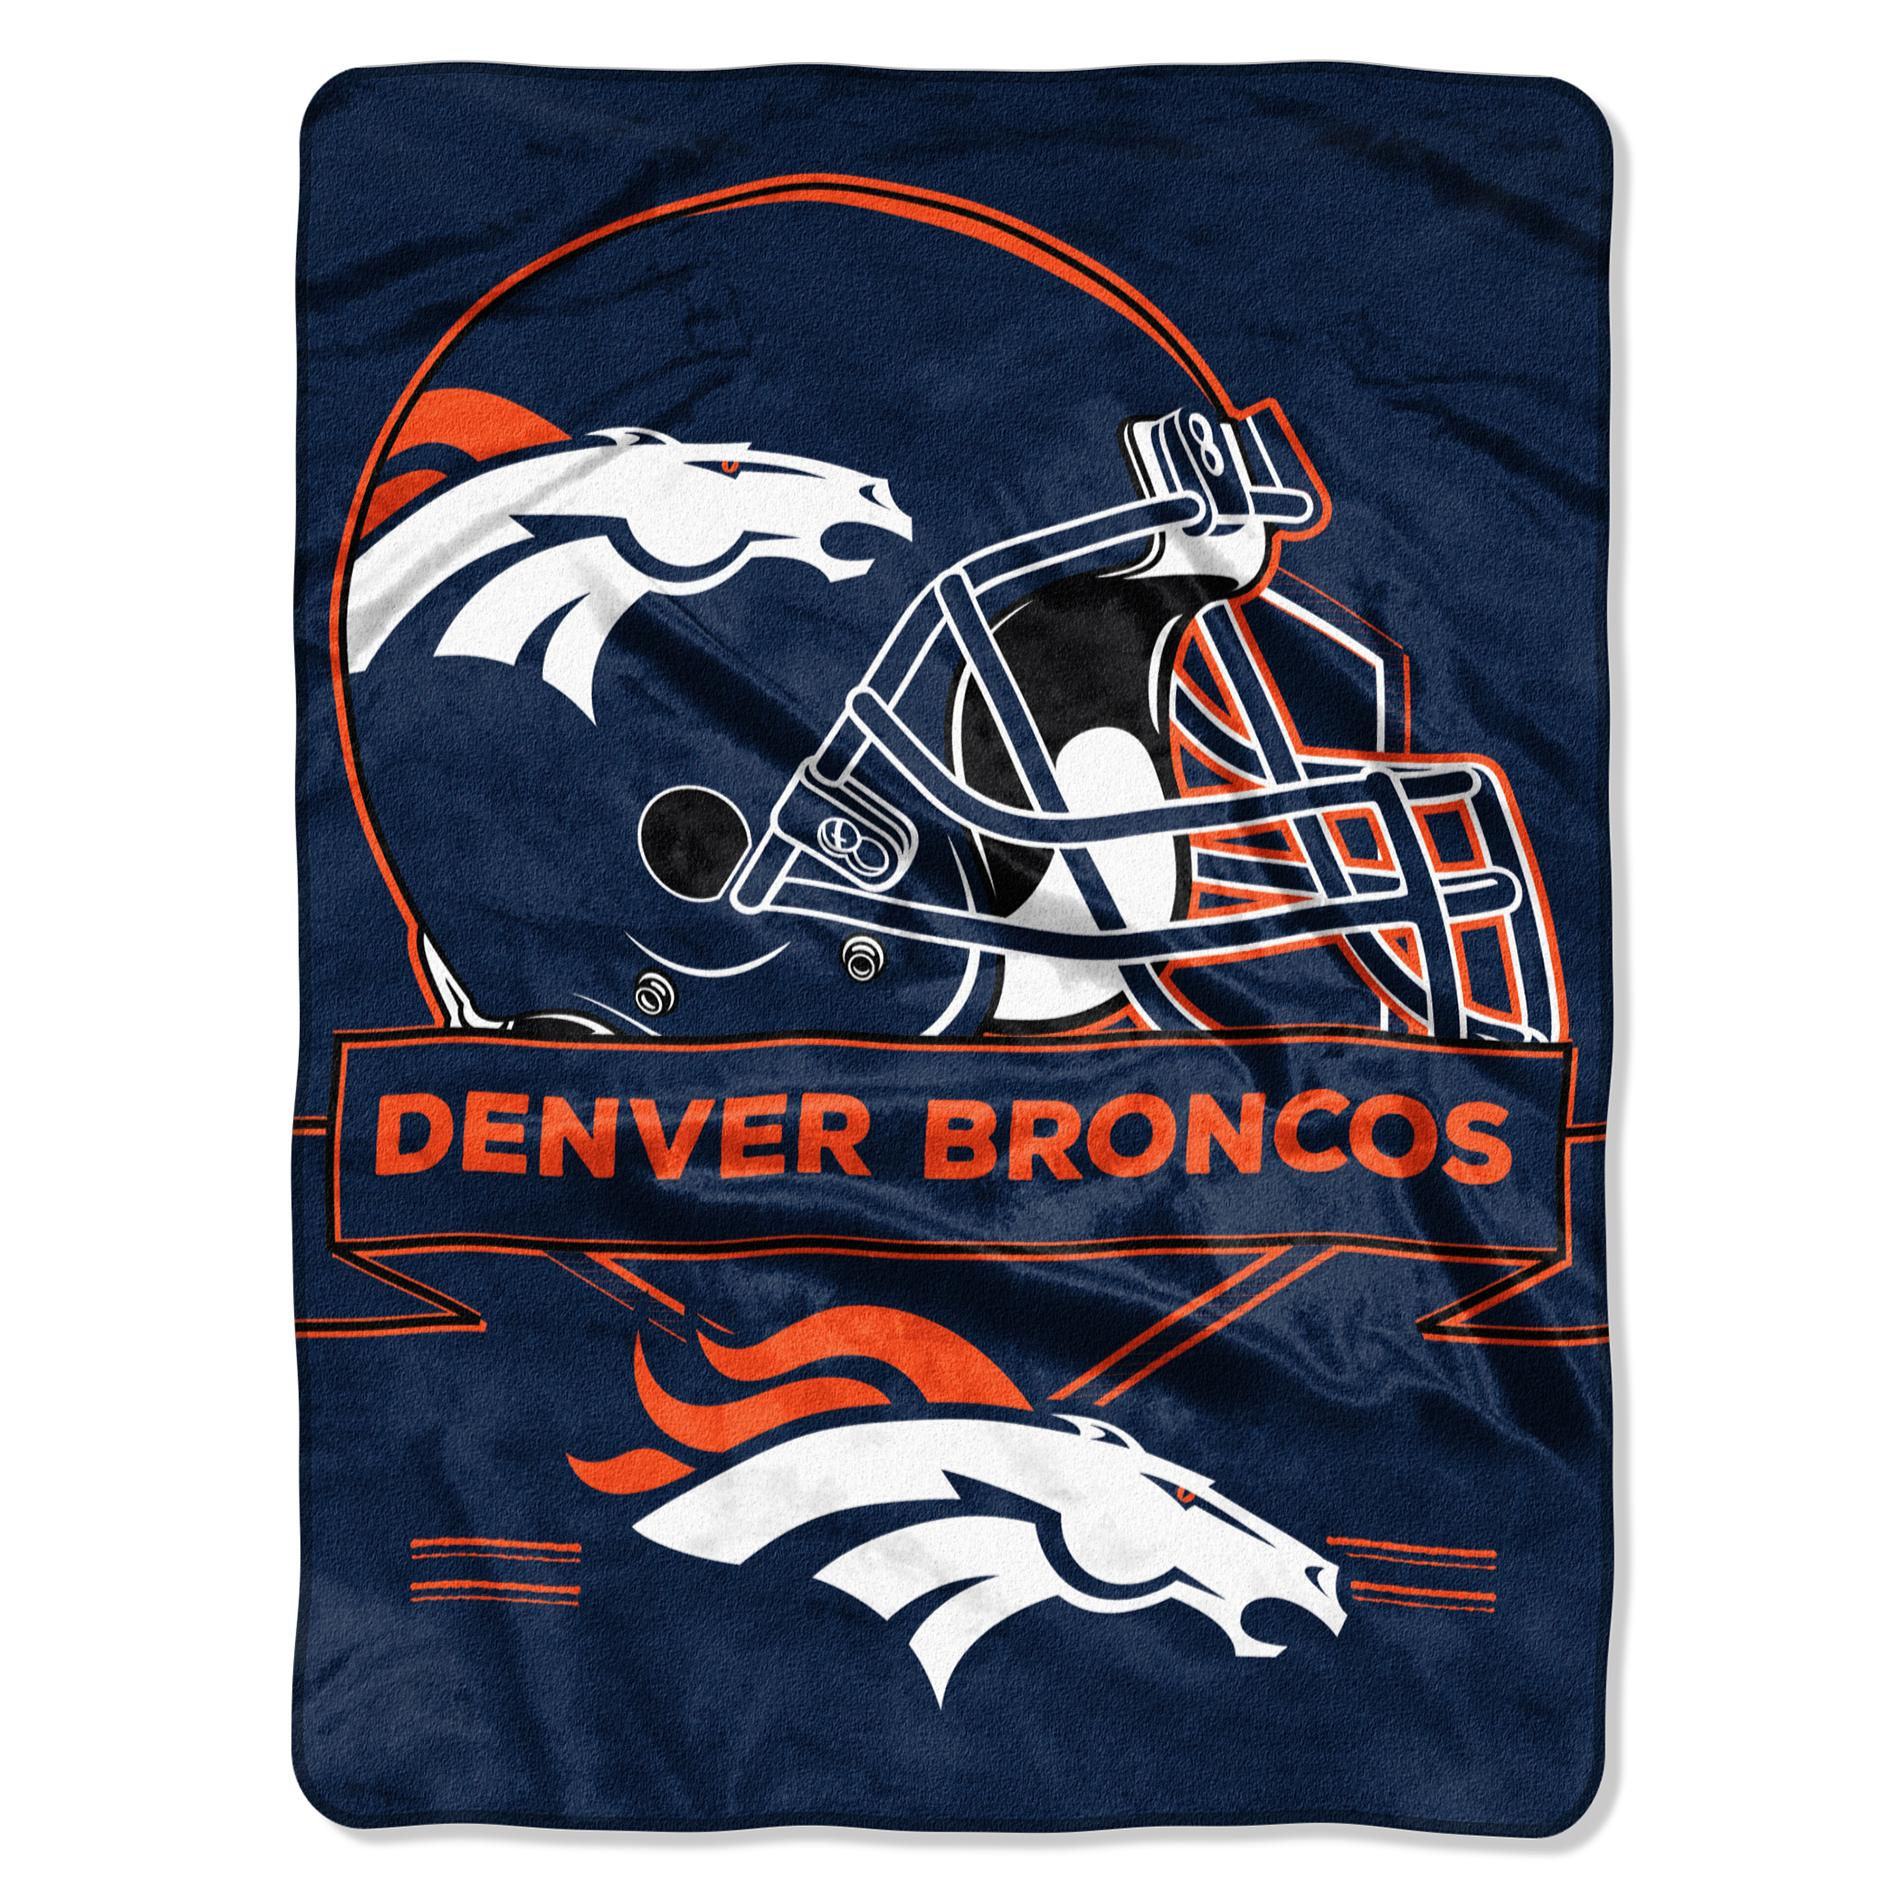 Denver Broncos Chair Nfl Plush Throw Denver Broncos Shop Your Way Online